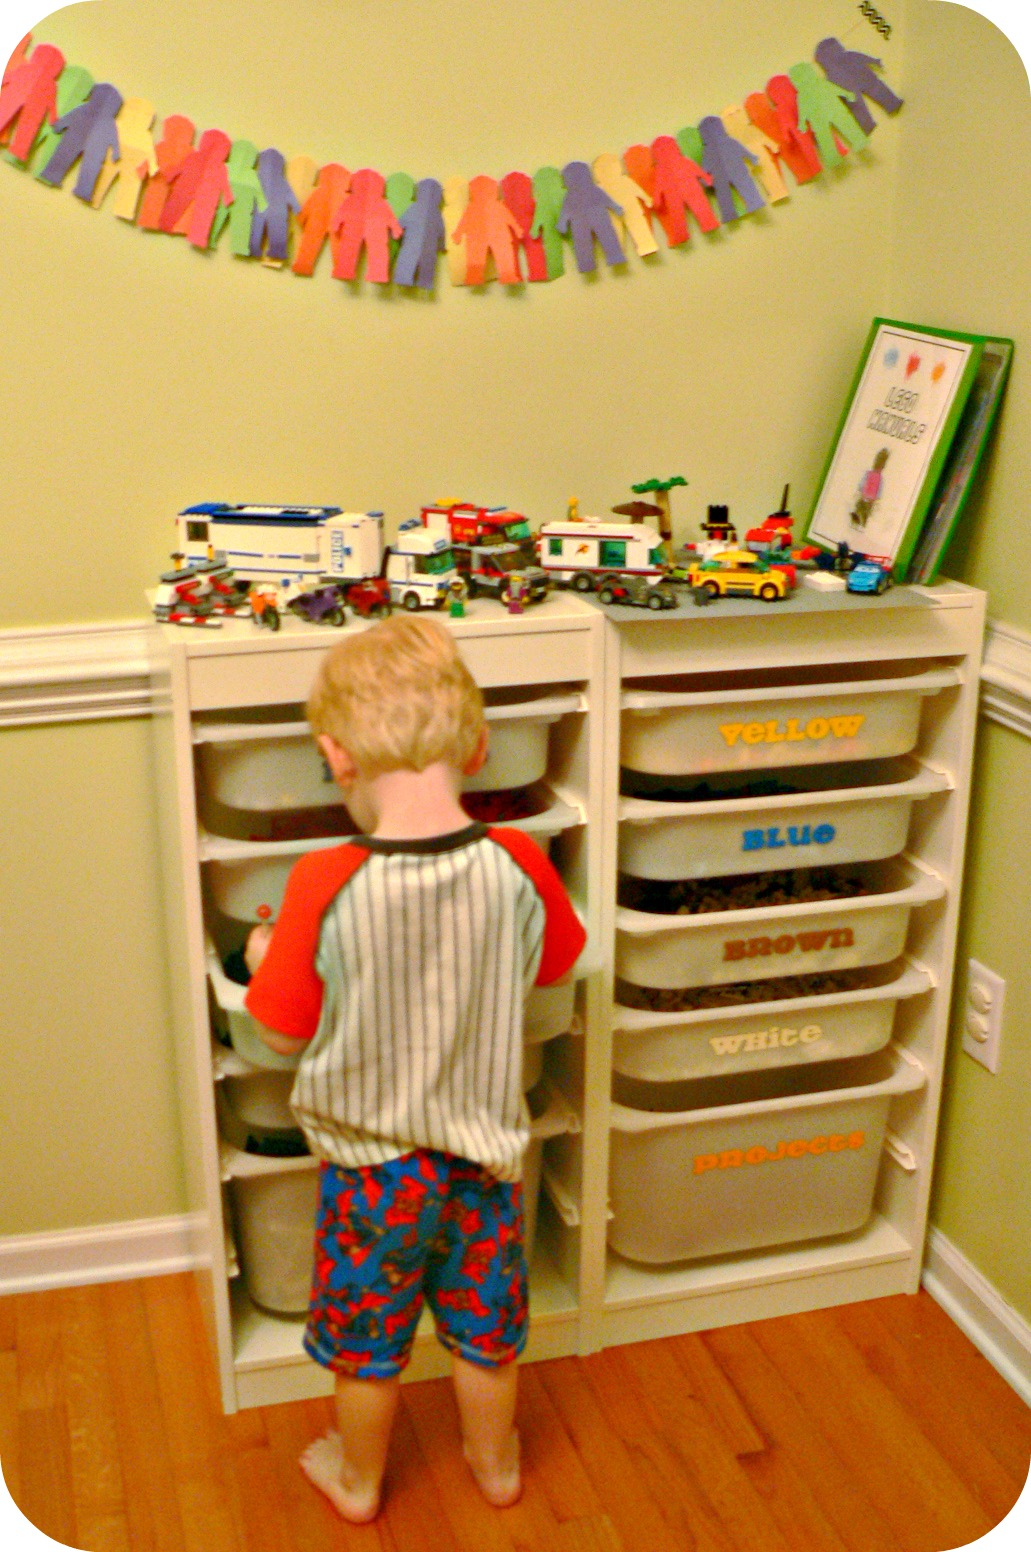 jacklego The Ultimate Lego Storage